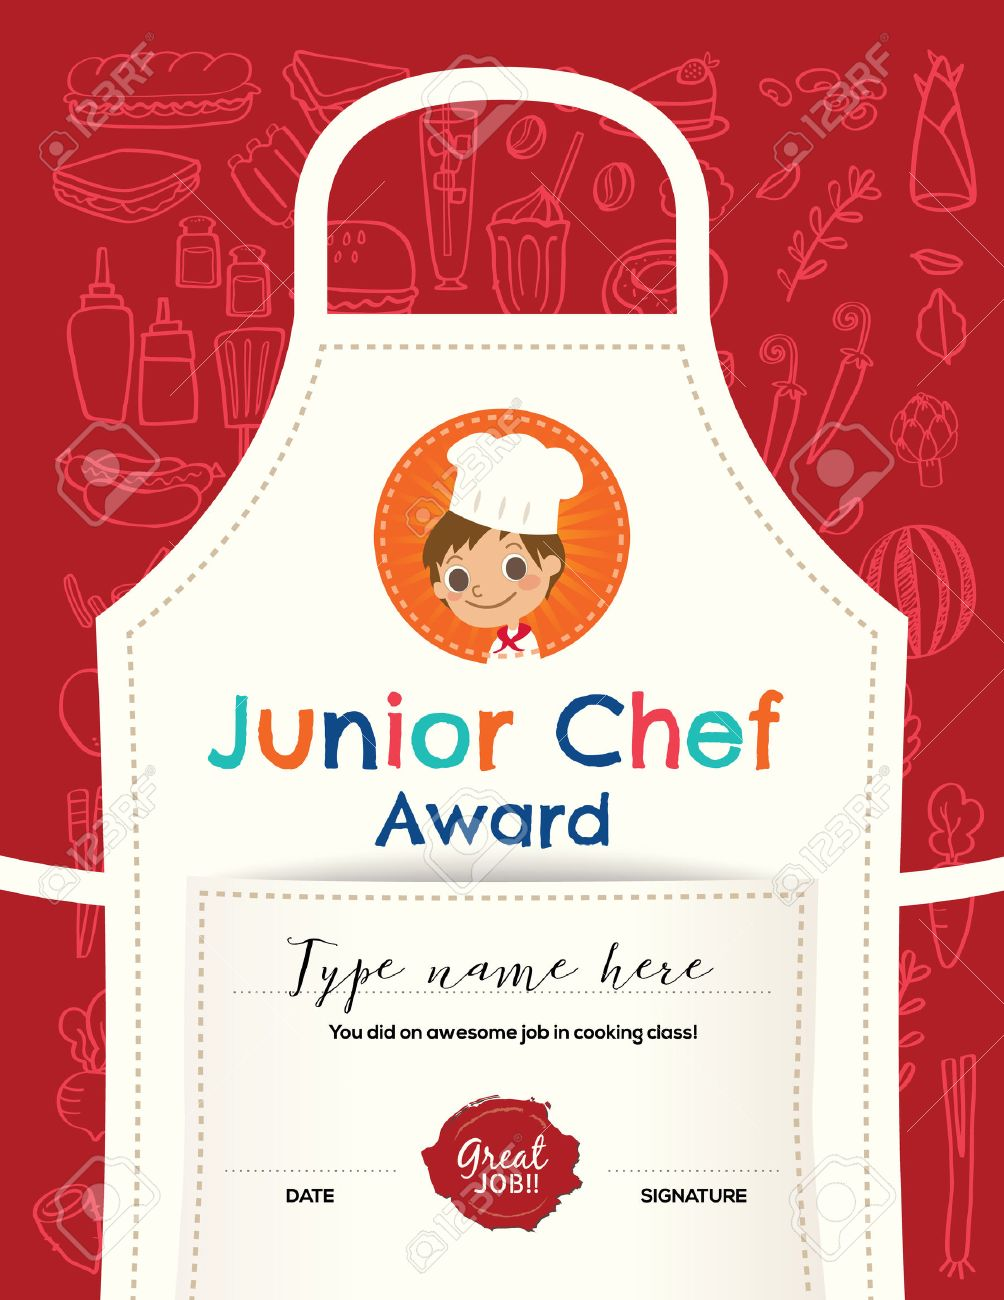 Cooking Certificate Template Glamorous Kids Cooking Class Certificate Design Template With Junior Chef .